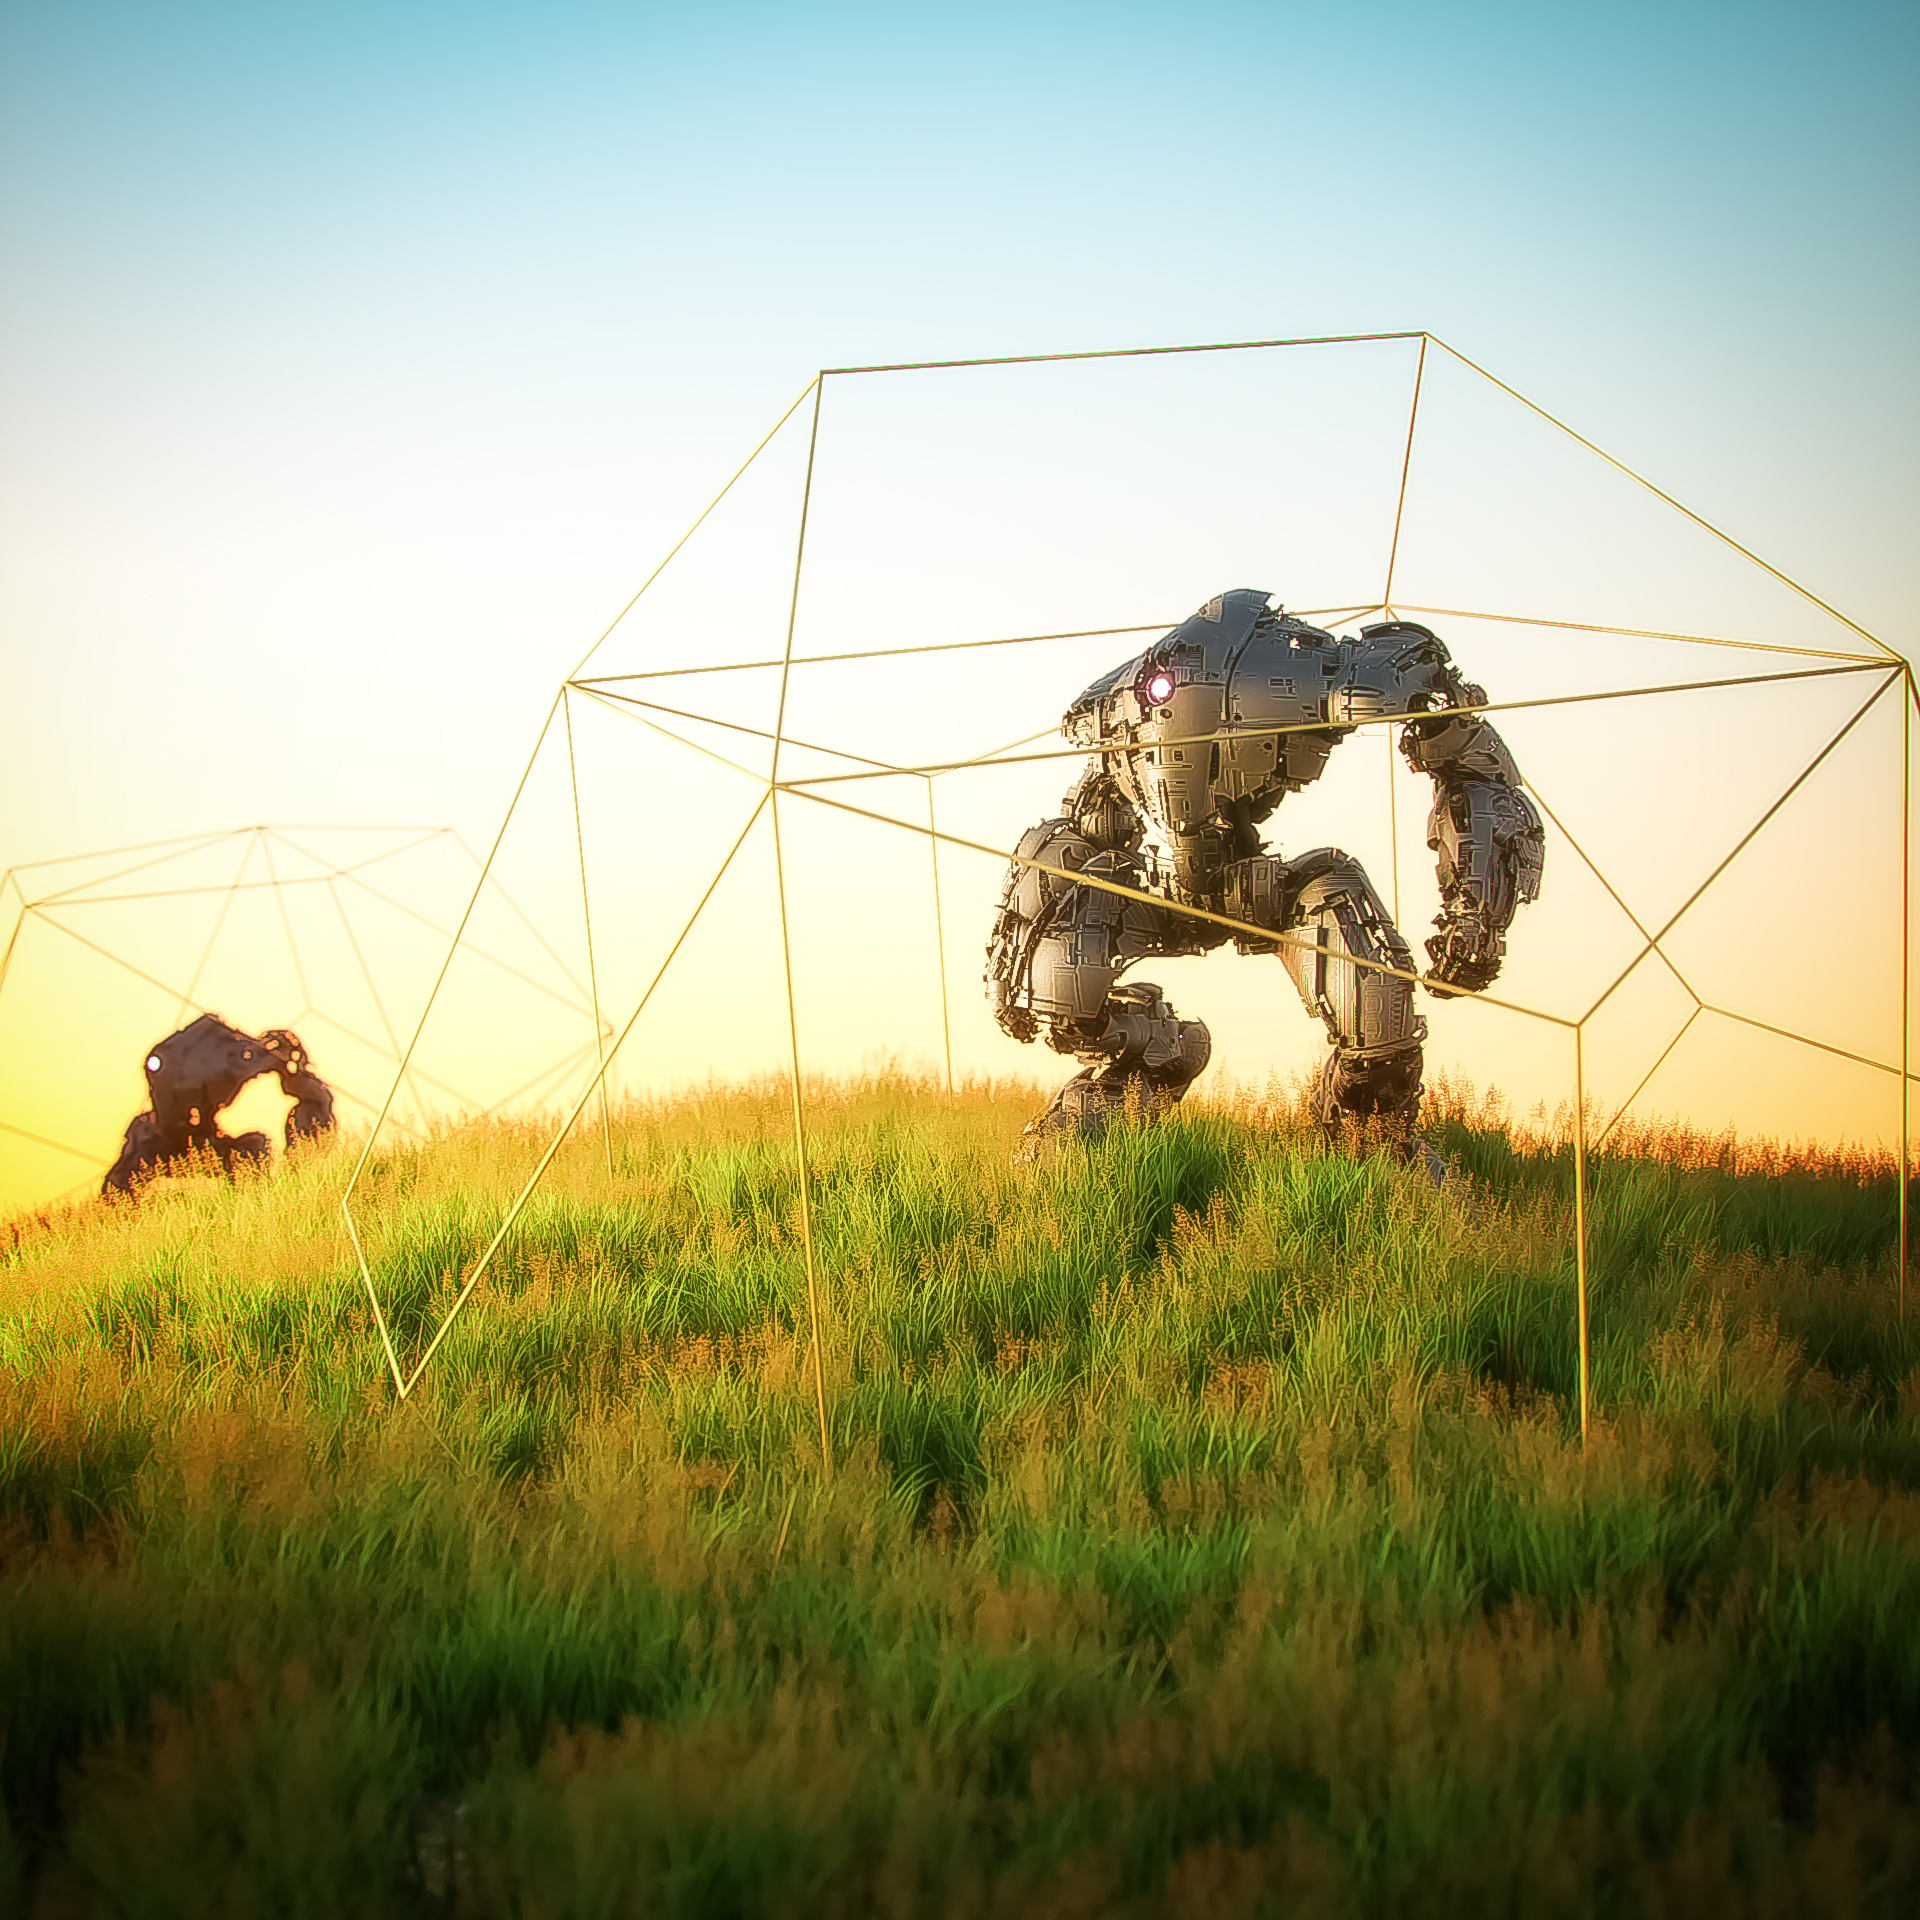 09.13 Octane Render No. 02. Mech M-6k provided by Comrade1280 via Sketchfab. I altered the textures a lot to get plate details. Working with Octane scatter for the grass.